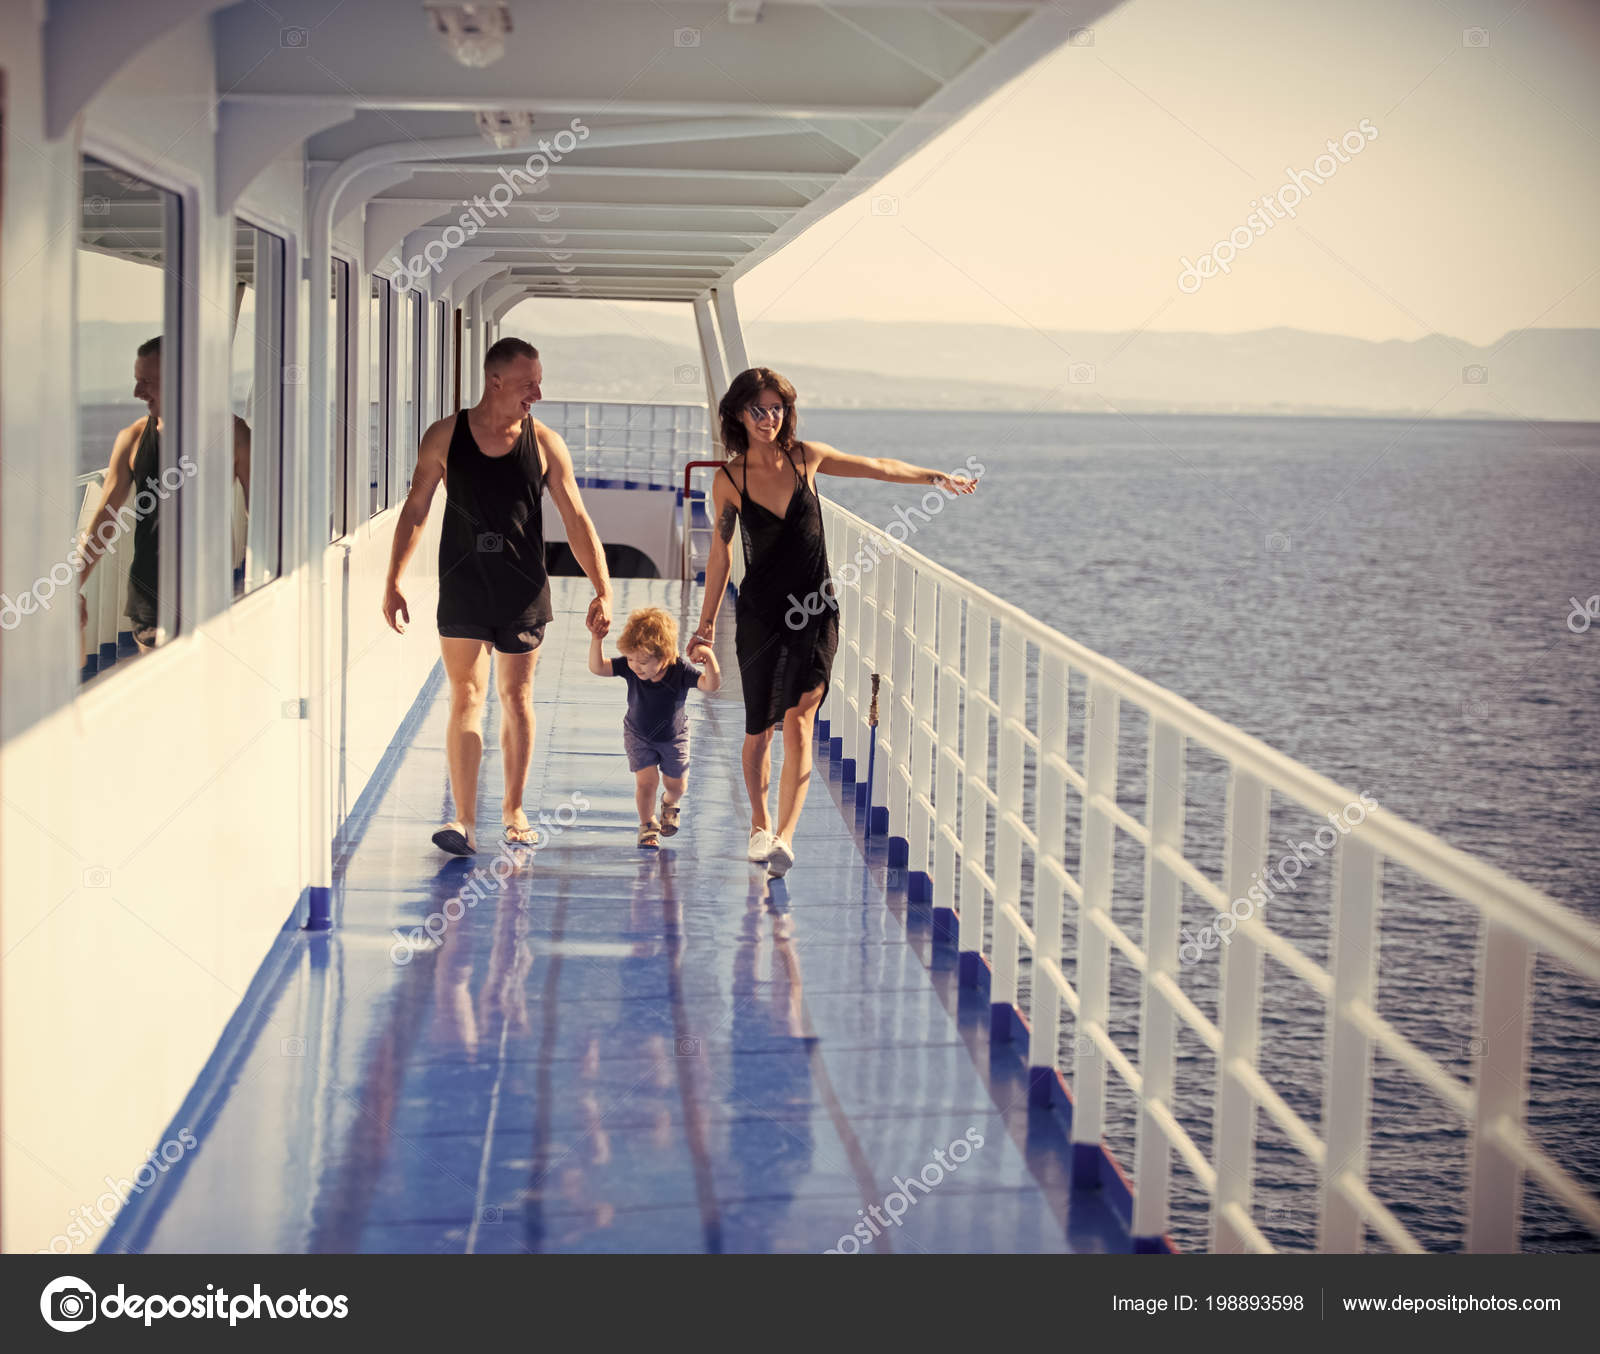 b69529436b3 family holiday. Happy family with cute son on summer vacation. Family  travelling on cruise ship on sunny day. Family rest concept. Father